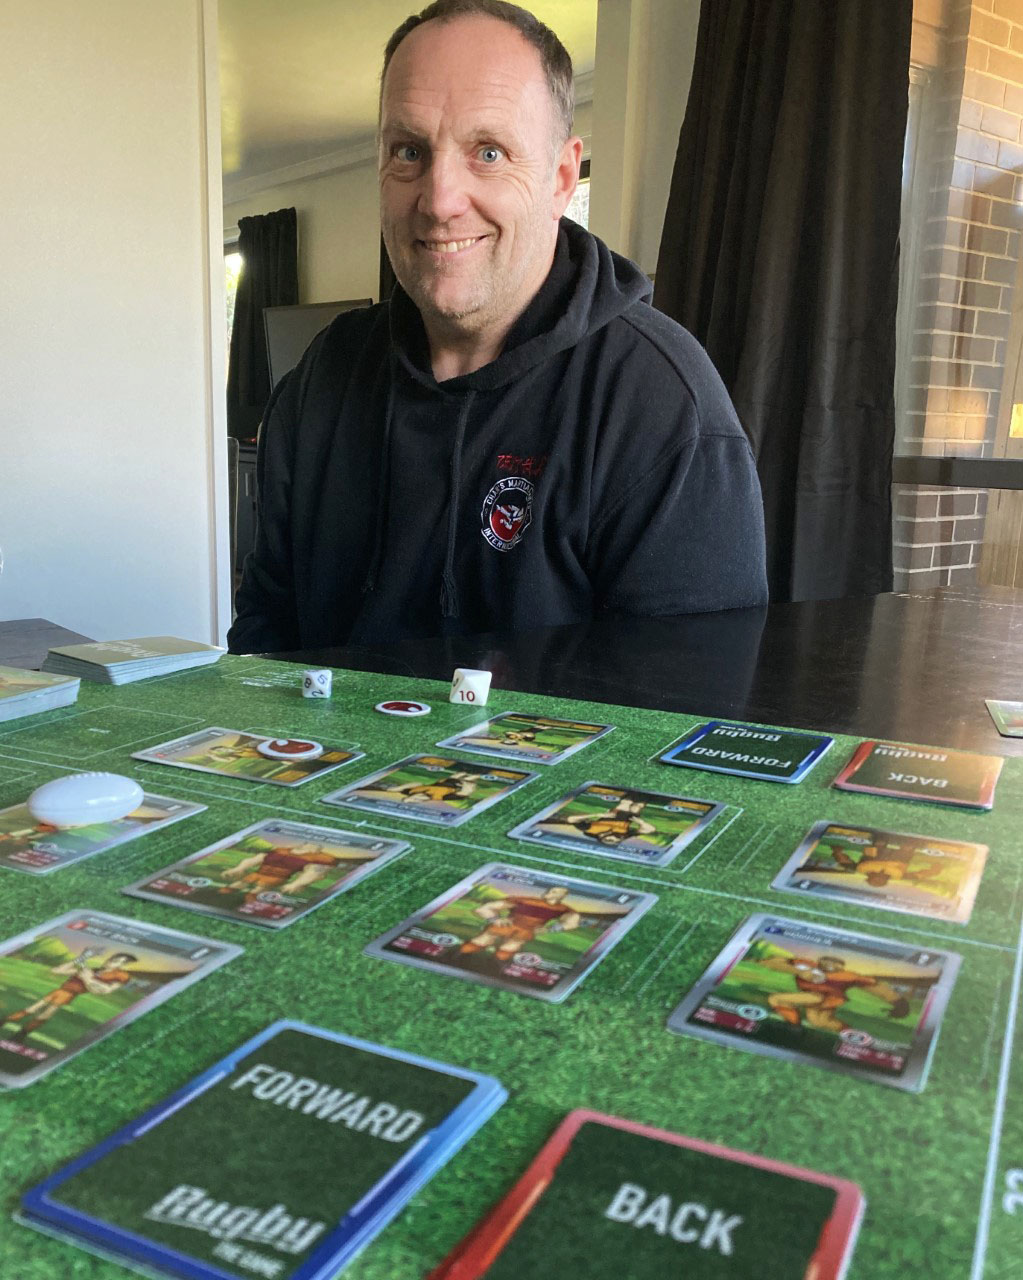 Zane Thompson has created a rugby board game. Photo: Chris Barclay